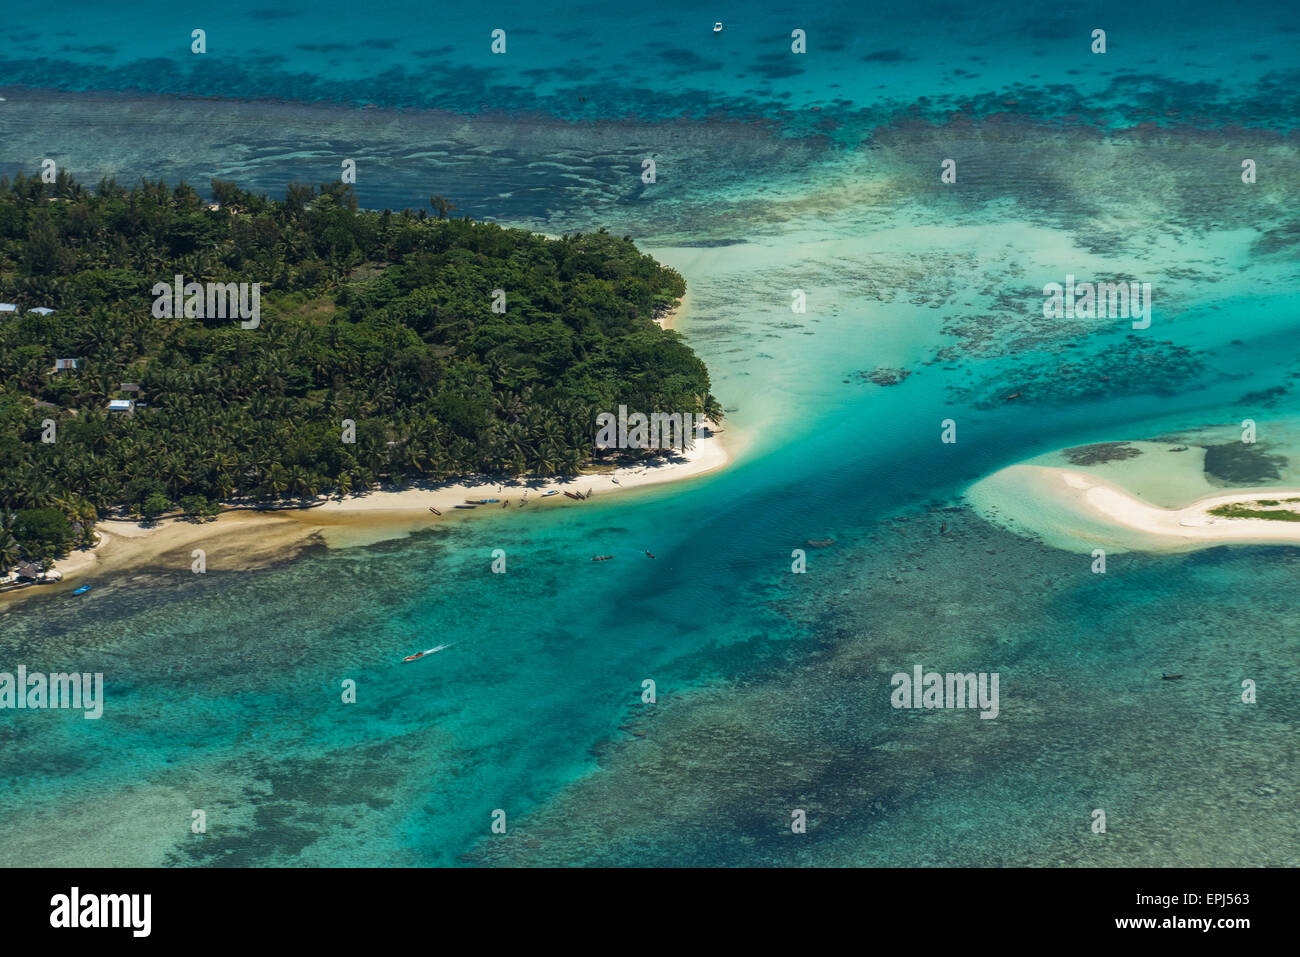 Aerial view of Sainte Marie island, Madagascar - Stock Image